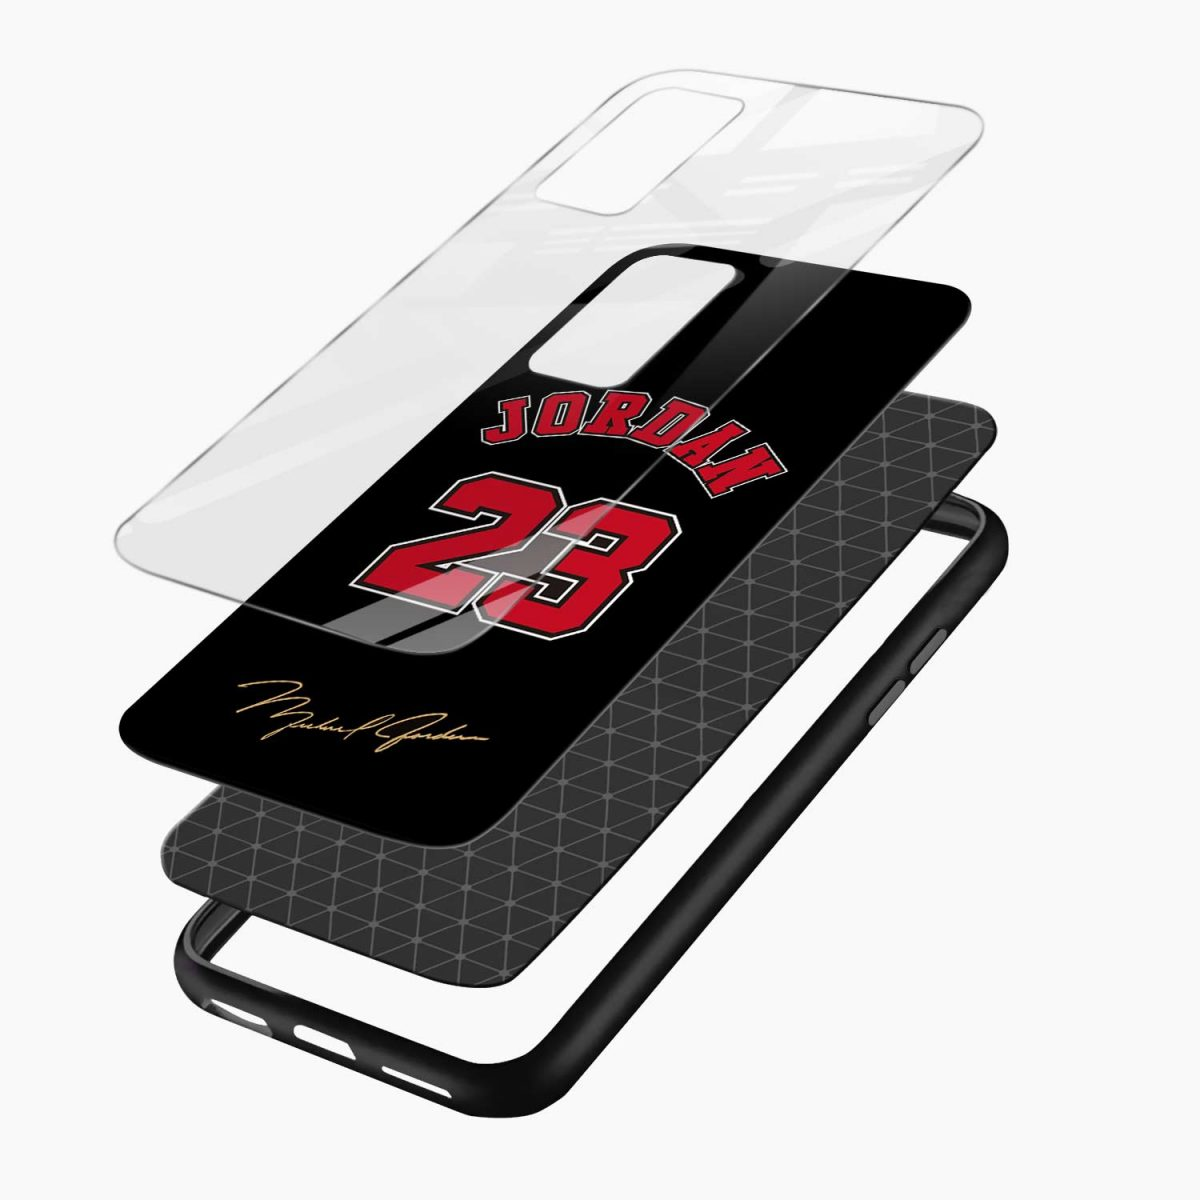 jordan 23 layers view oneplus 9r back cover